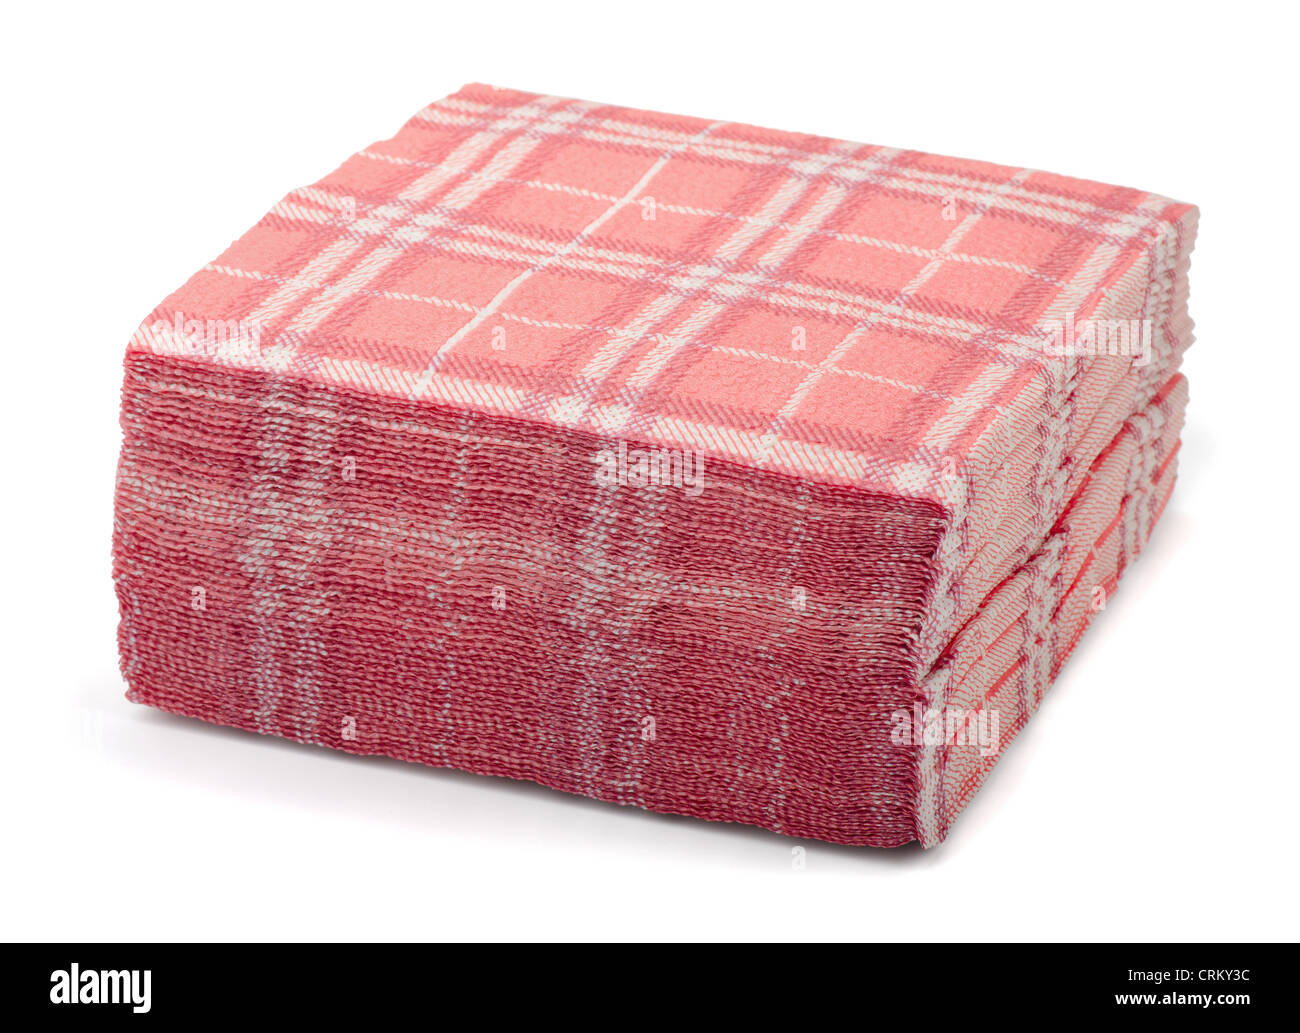 Stack of pink paper napkins isolated on white - Stock Image